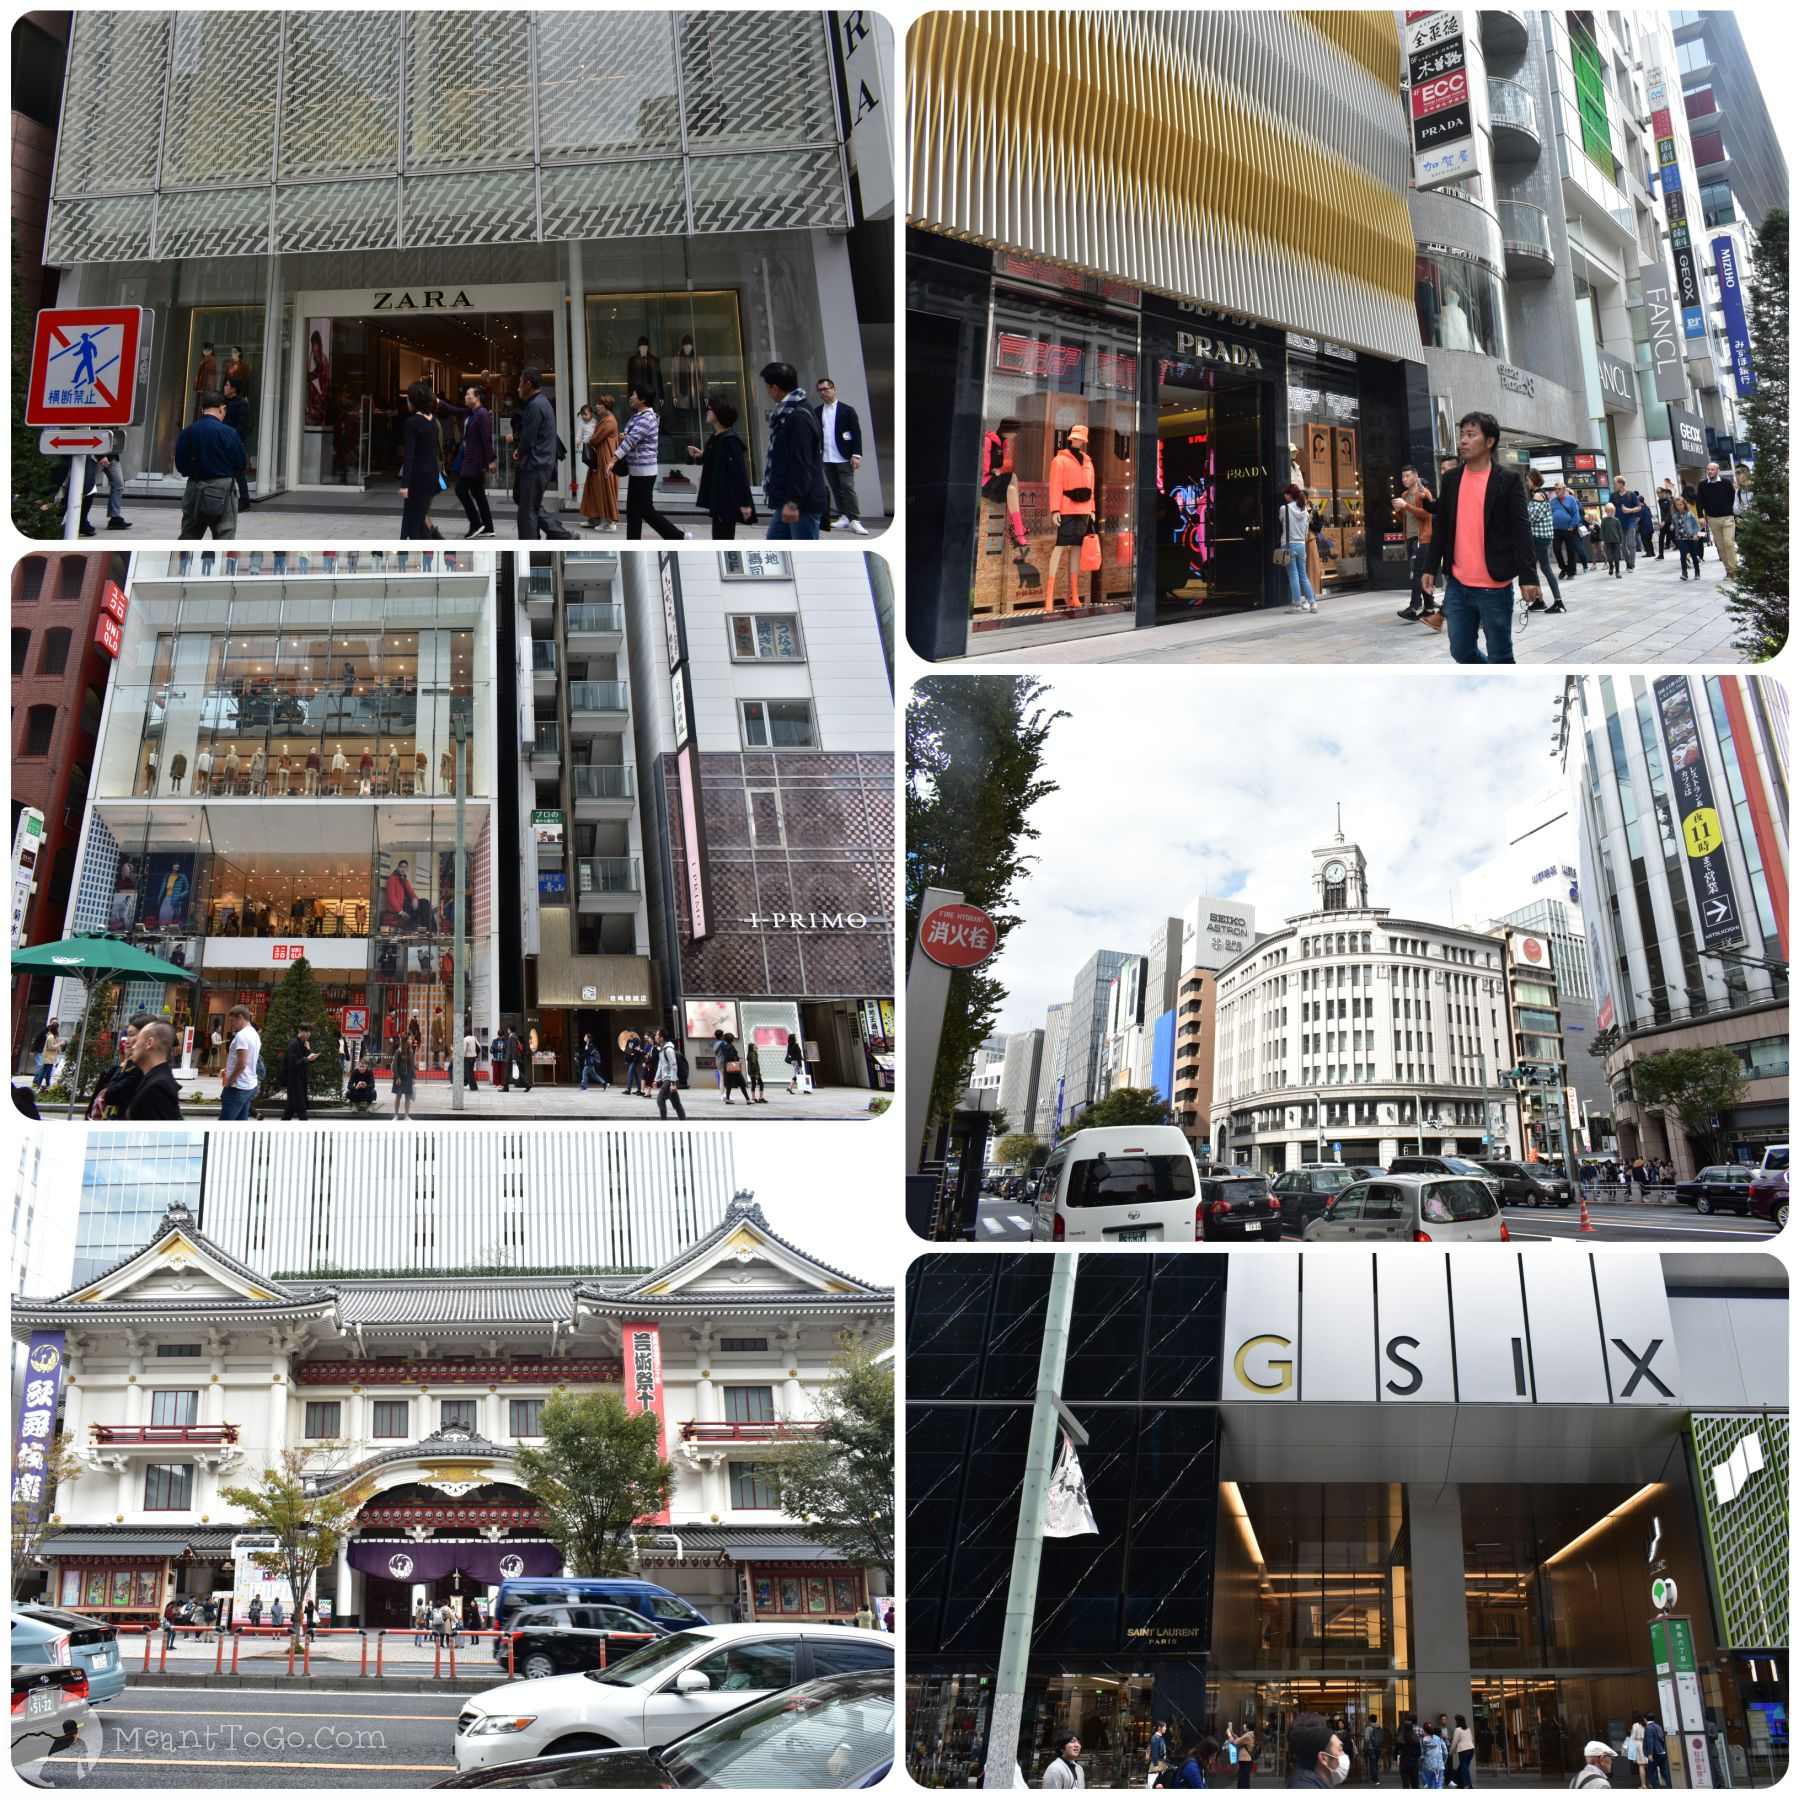 Ginza - The High-end Shopping District of Tokyo